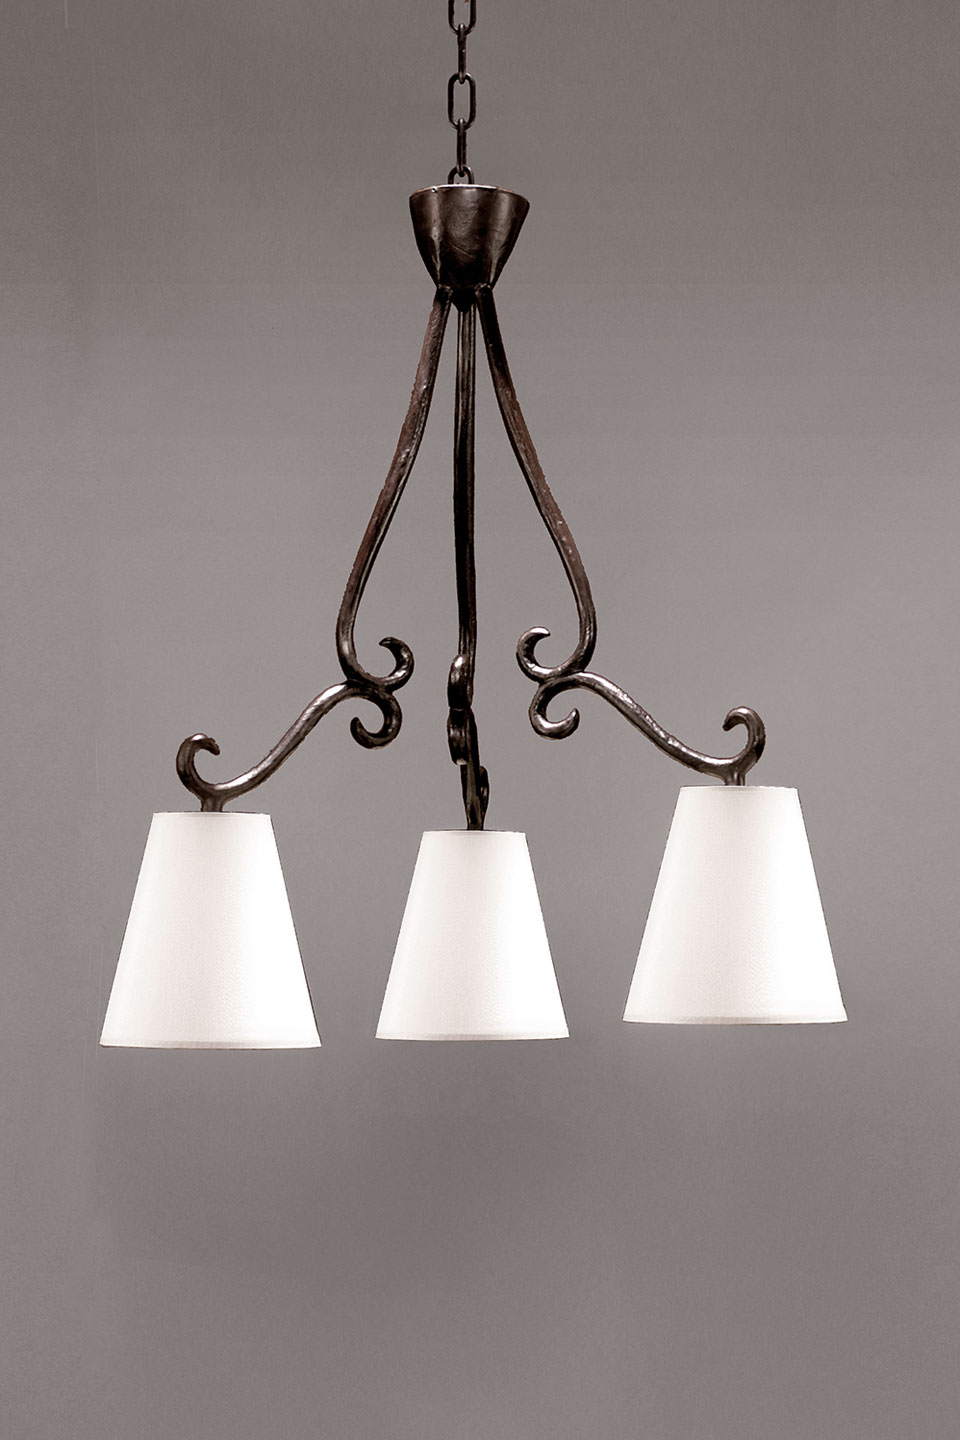 3 lights chandelier in bronze and hanging lampshade